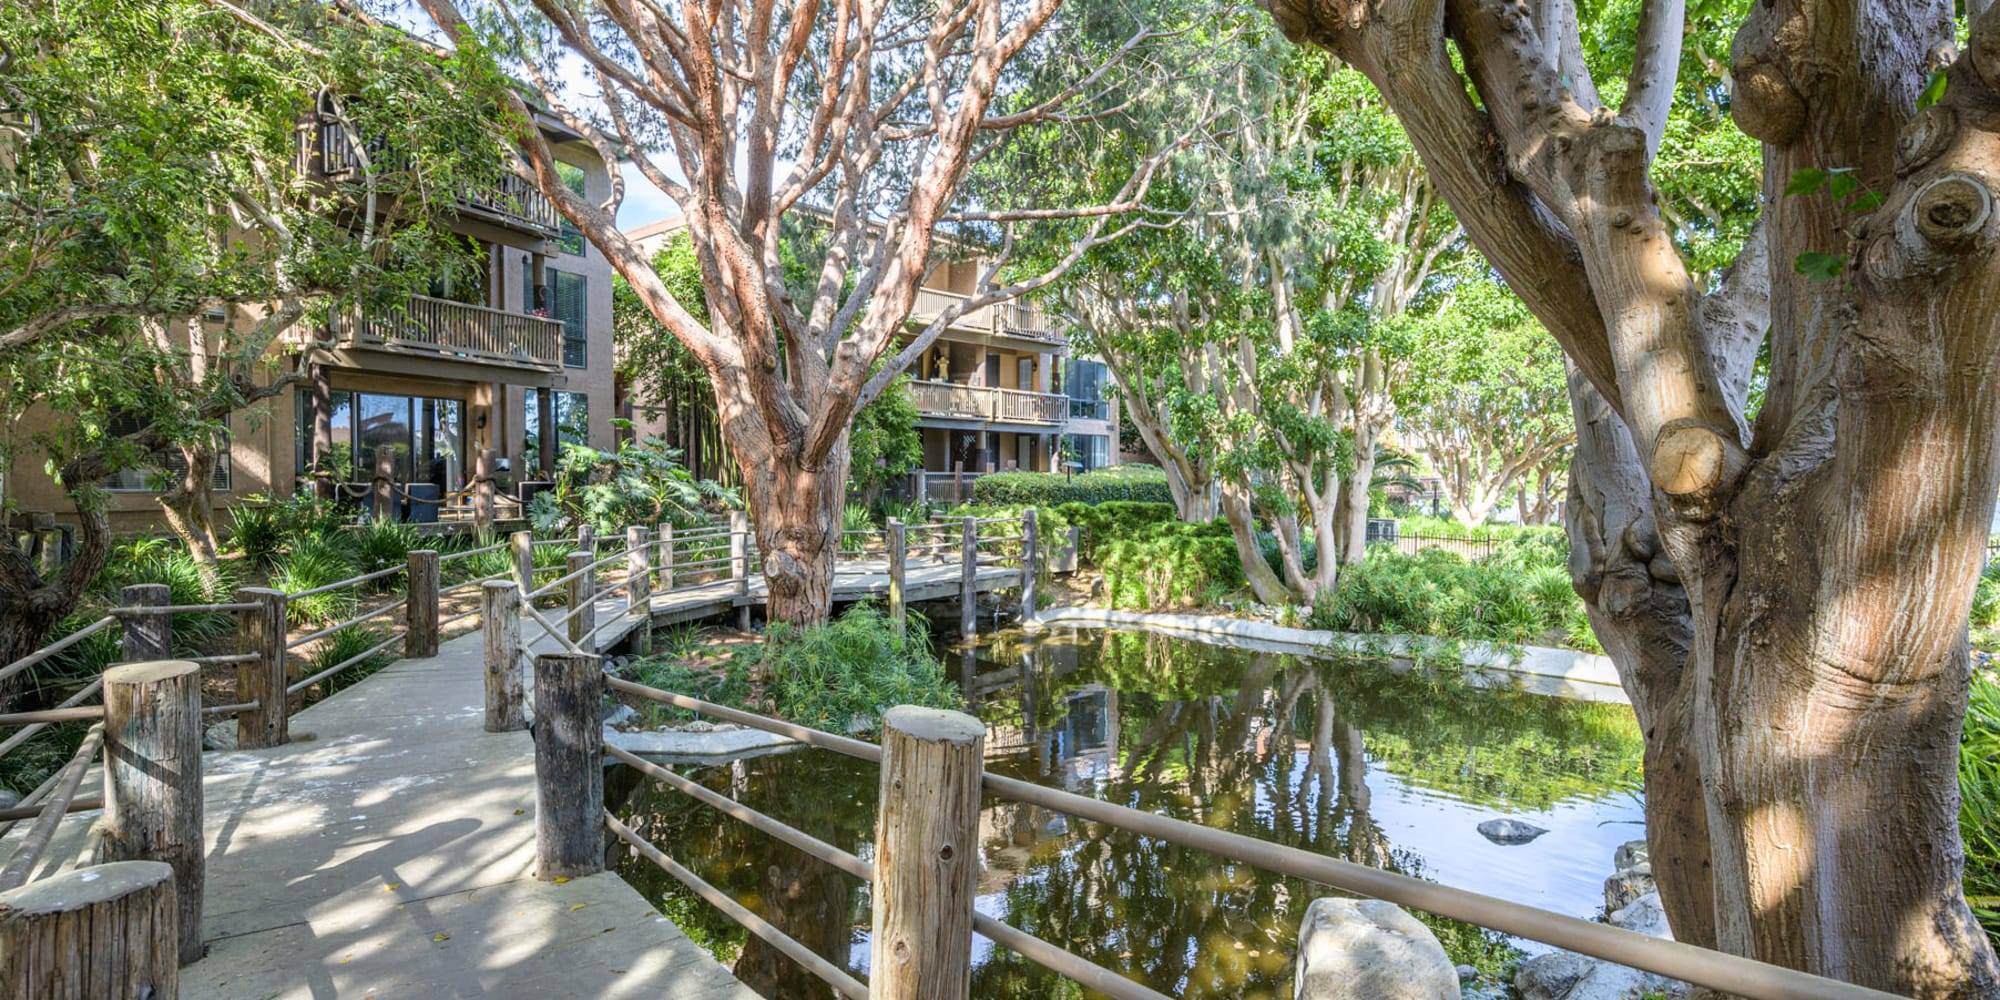 Wooden walkways winding through the trees above the lagoon at Mariners Village in Marina del Rey, California